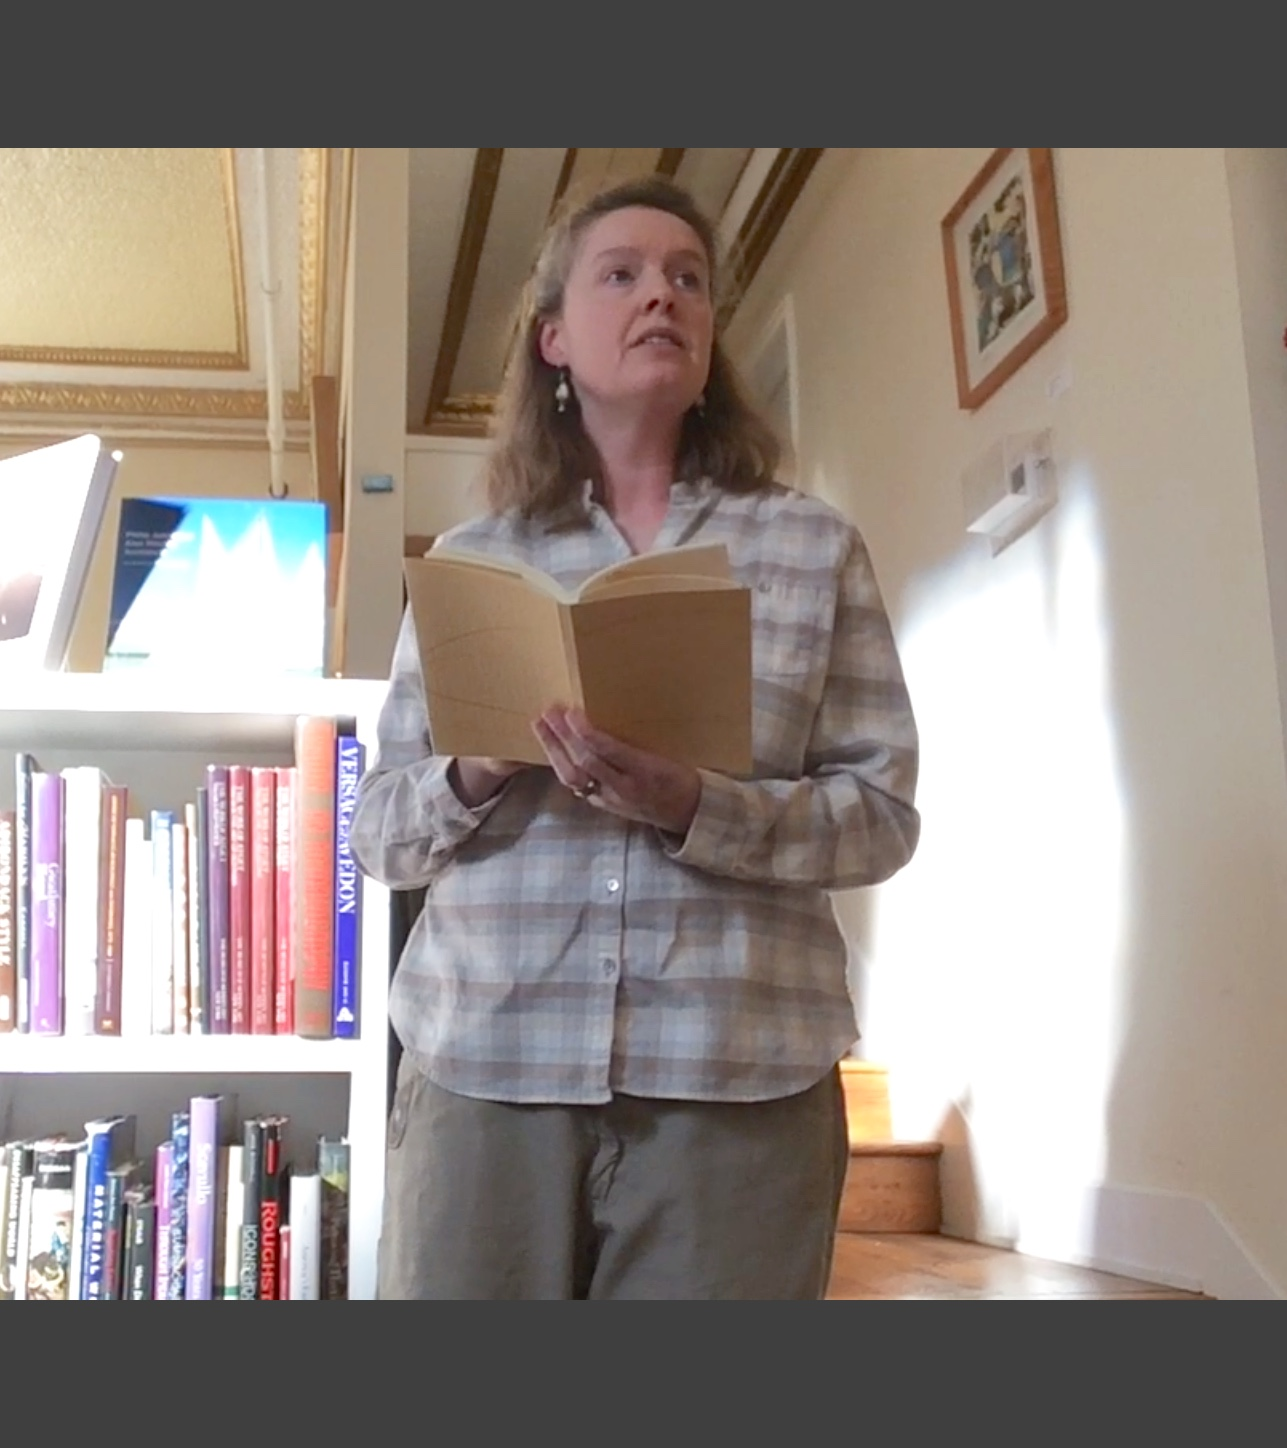 Poet Emily Hancock reading from  The Open Gate  at the book launch. 12/3/17